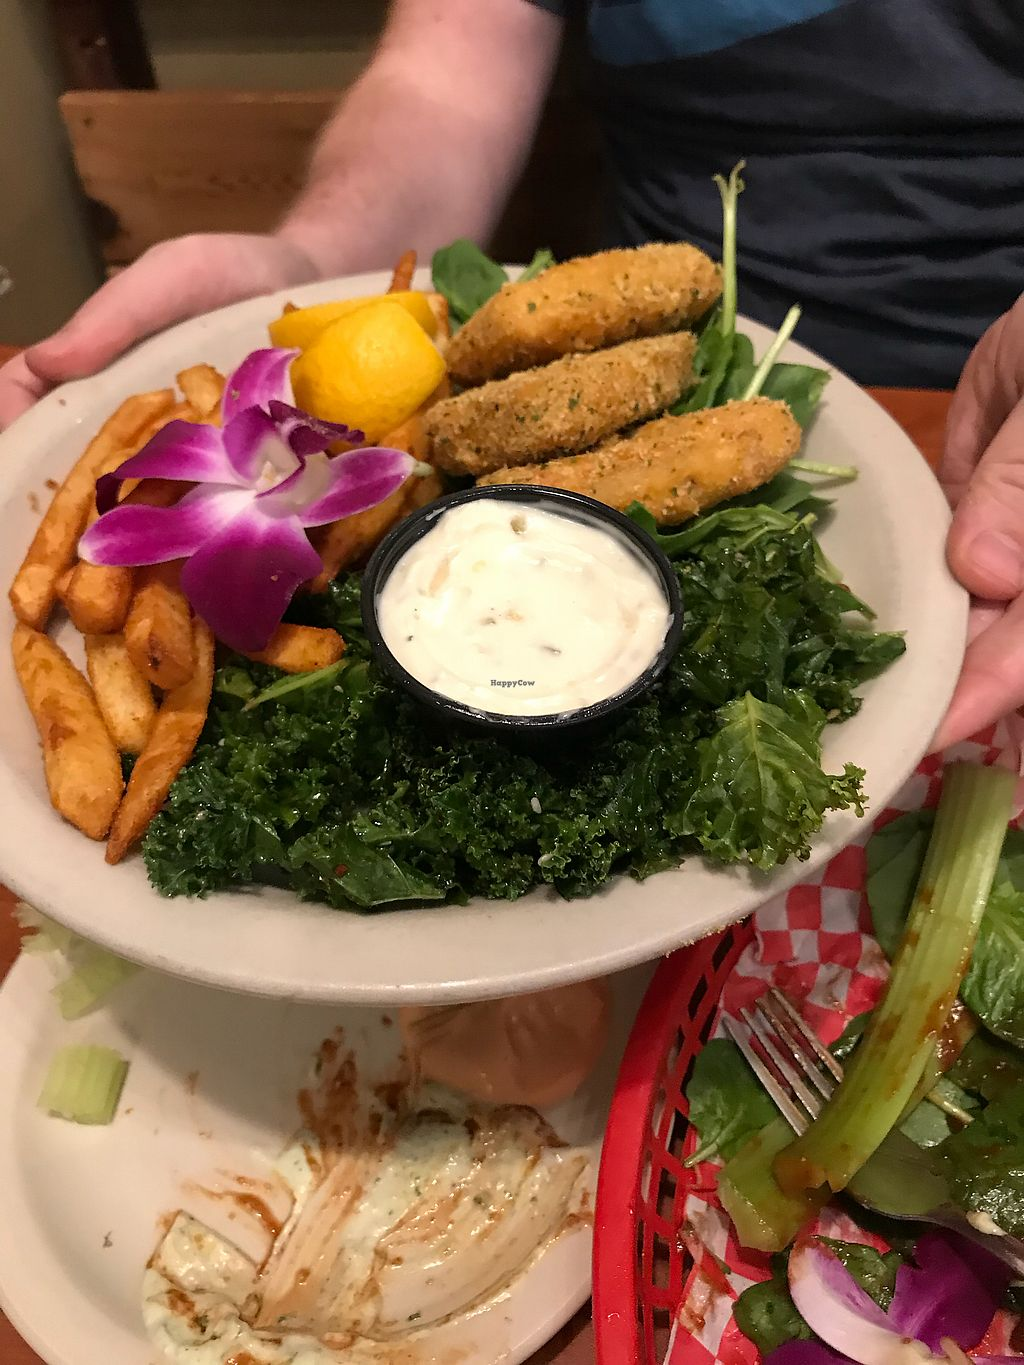 """Photo of Green Vegetarian Cuisine - Downtown  by <a href=""""/members/profile/justjaki21"""">justjaki21</a> <br/>Fish and chips  <br/> April 2, 2018  - <a href='/contact/abuse/image/9860/379830'>Report</a>"""